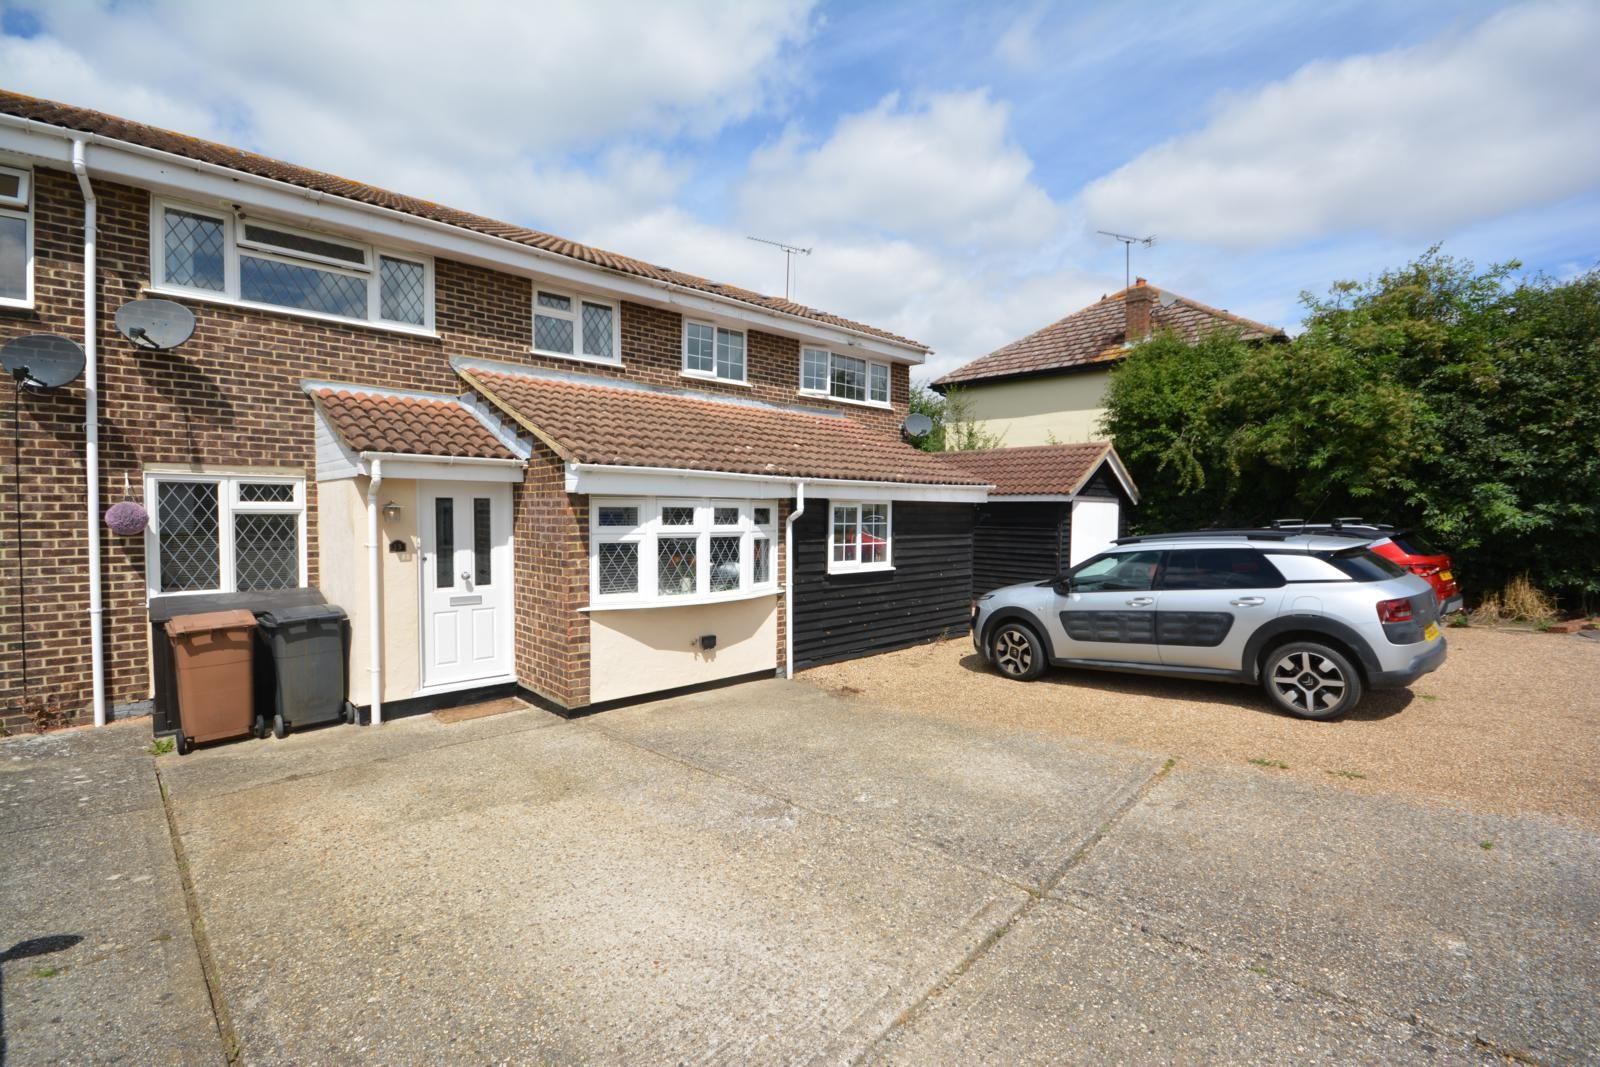 Chatley Road, Great Leighs, Chelmsford, Essex, CM3